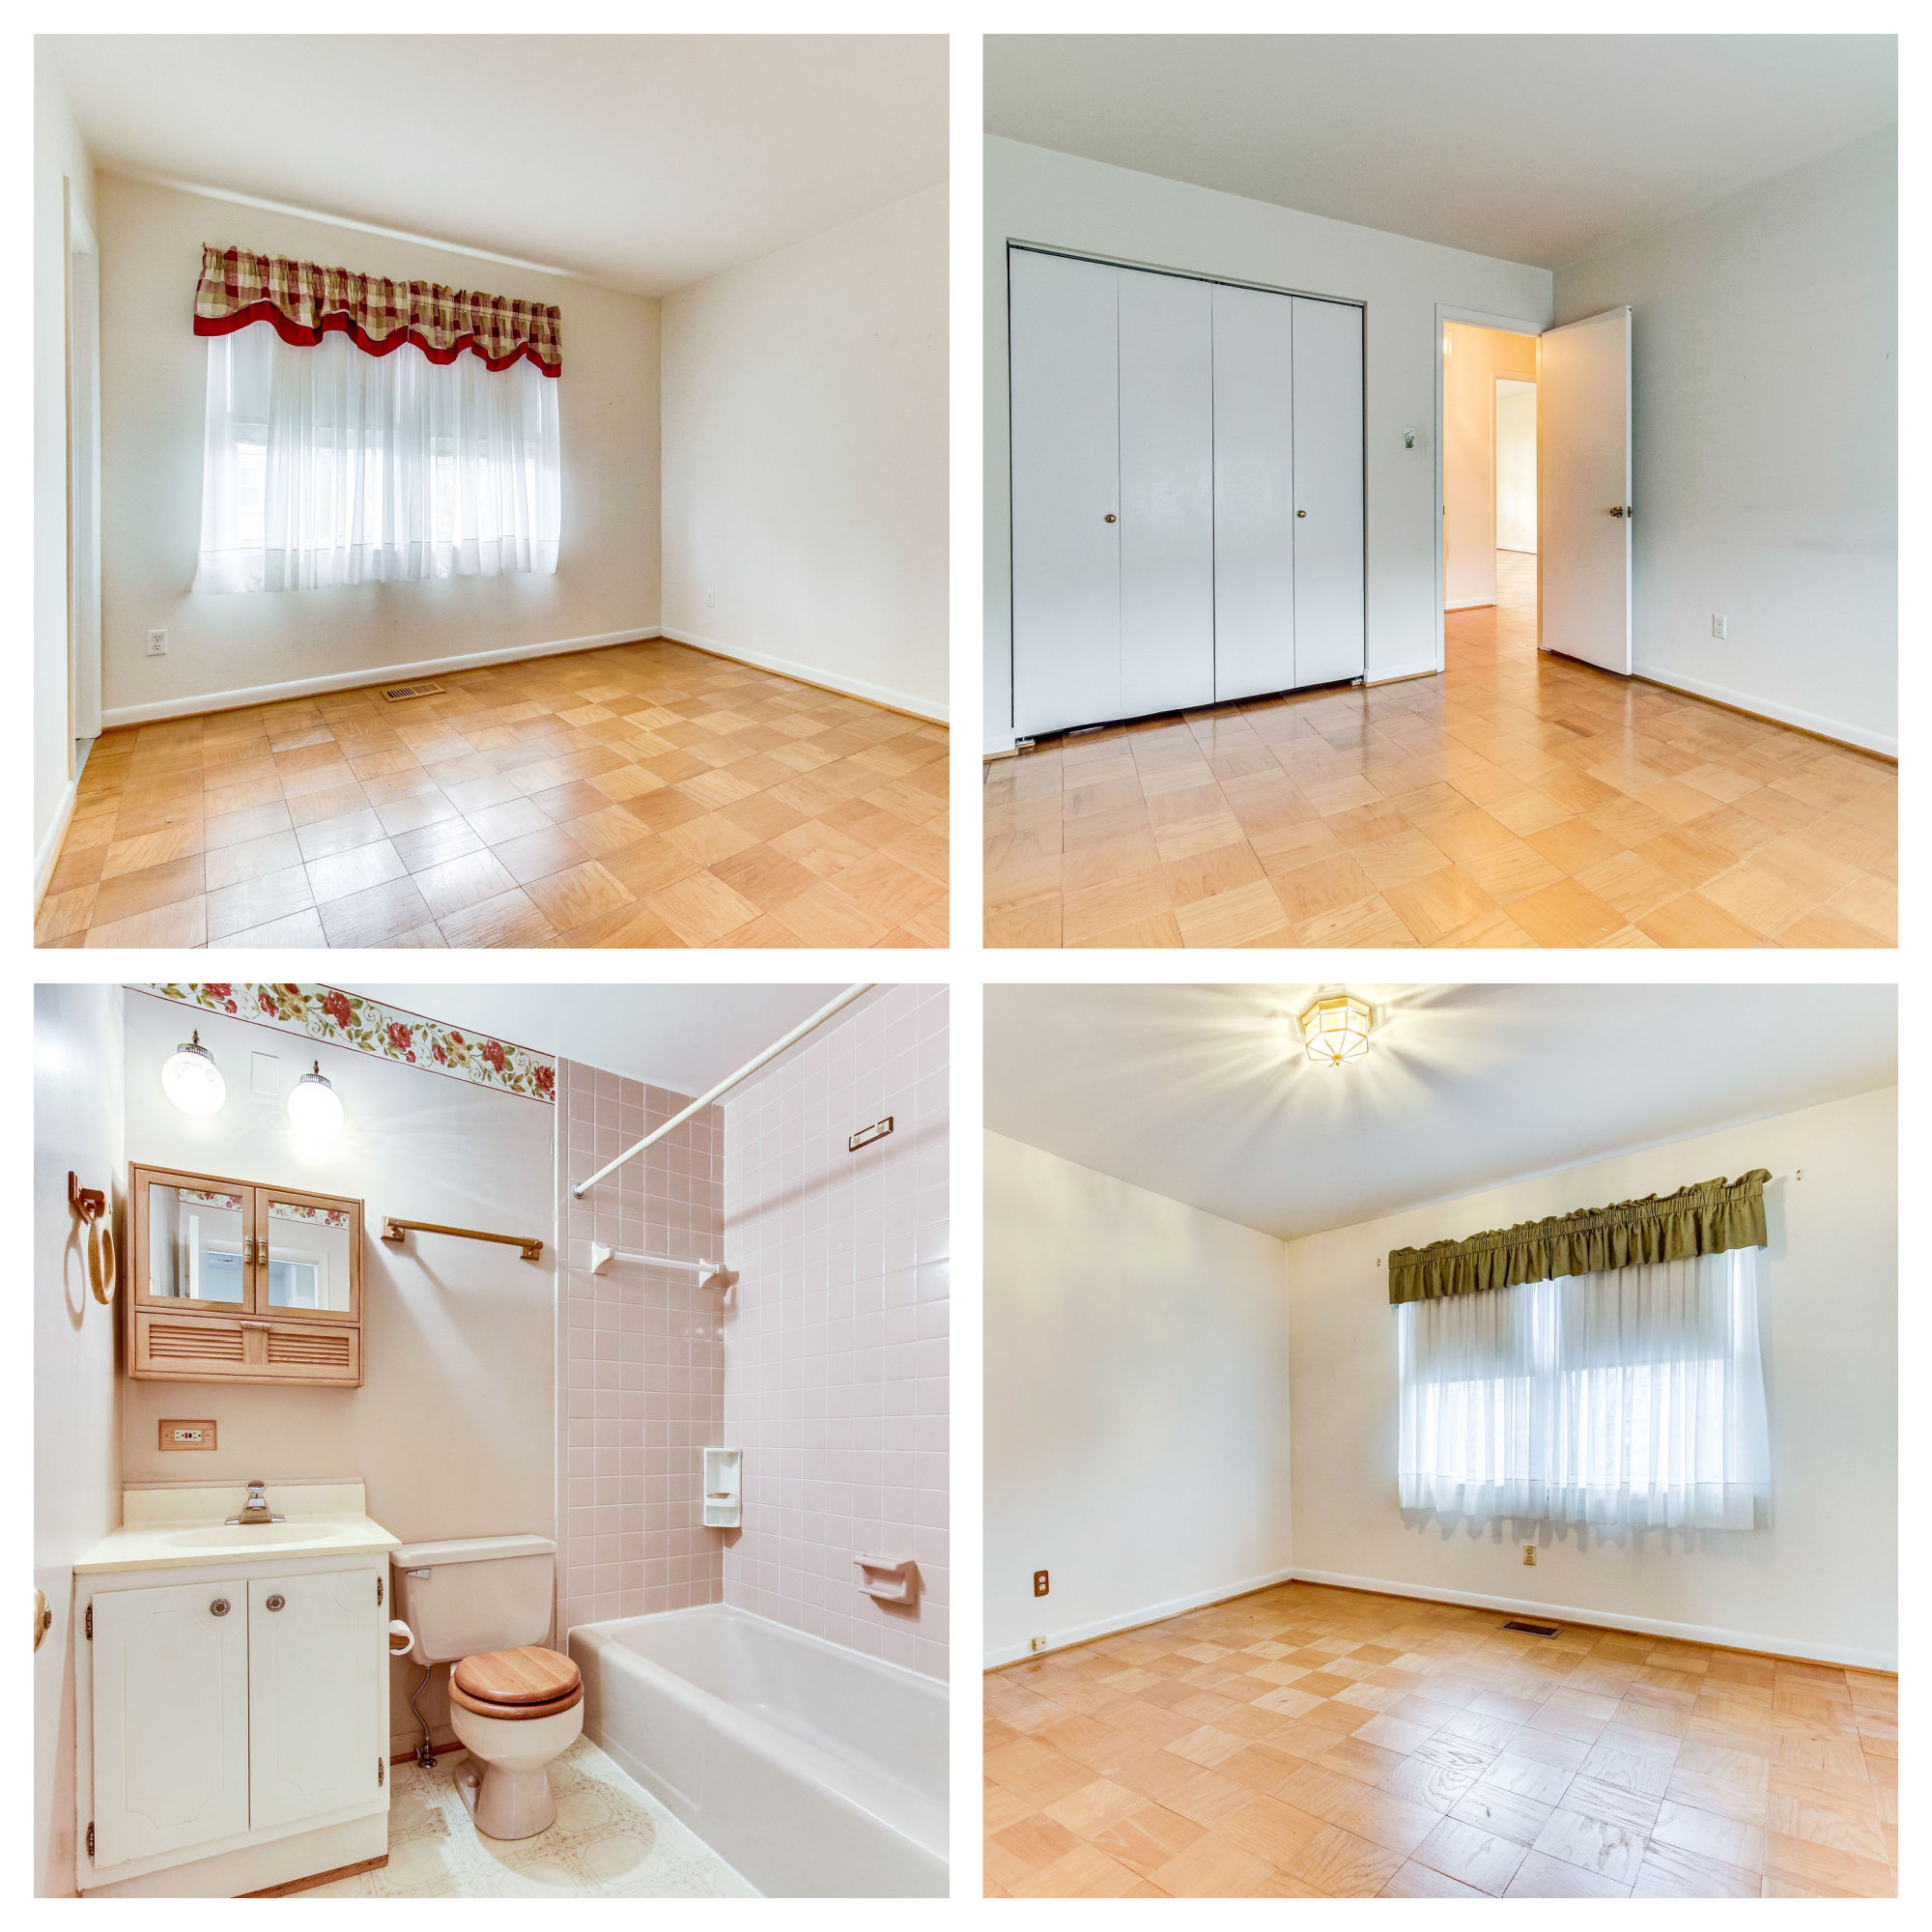 5101 Overlook Park, Annandale- Additional Bedrooms and Bath